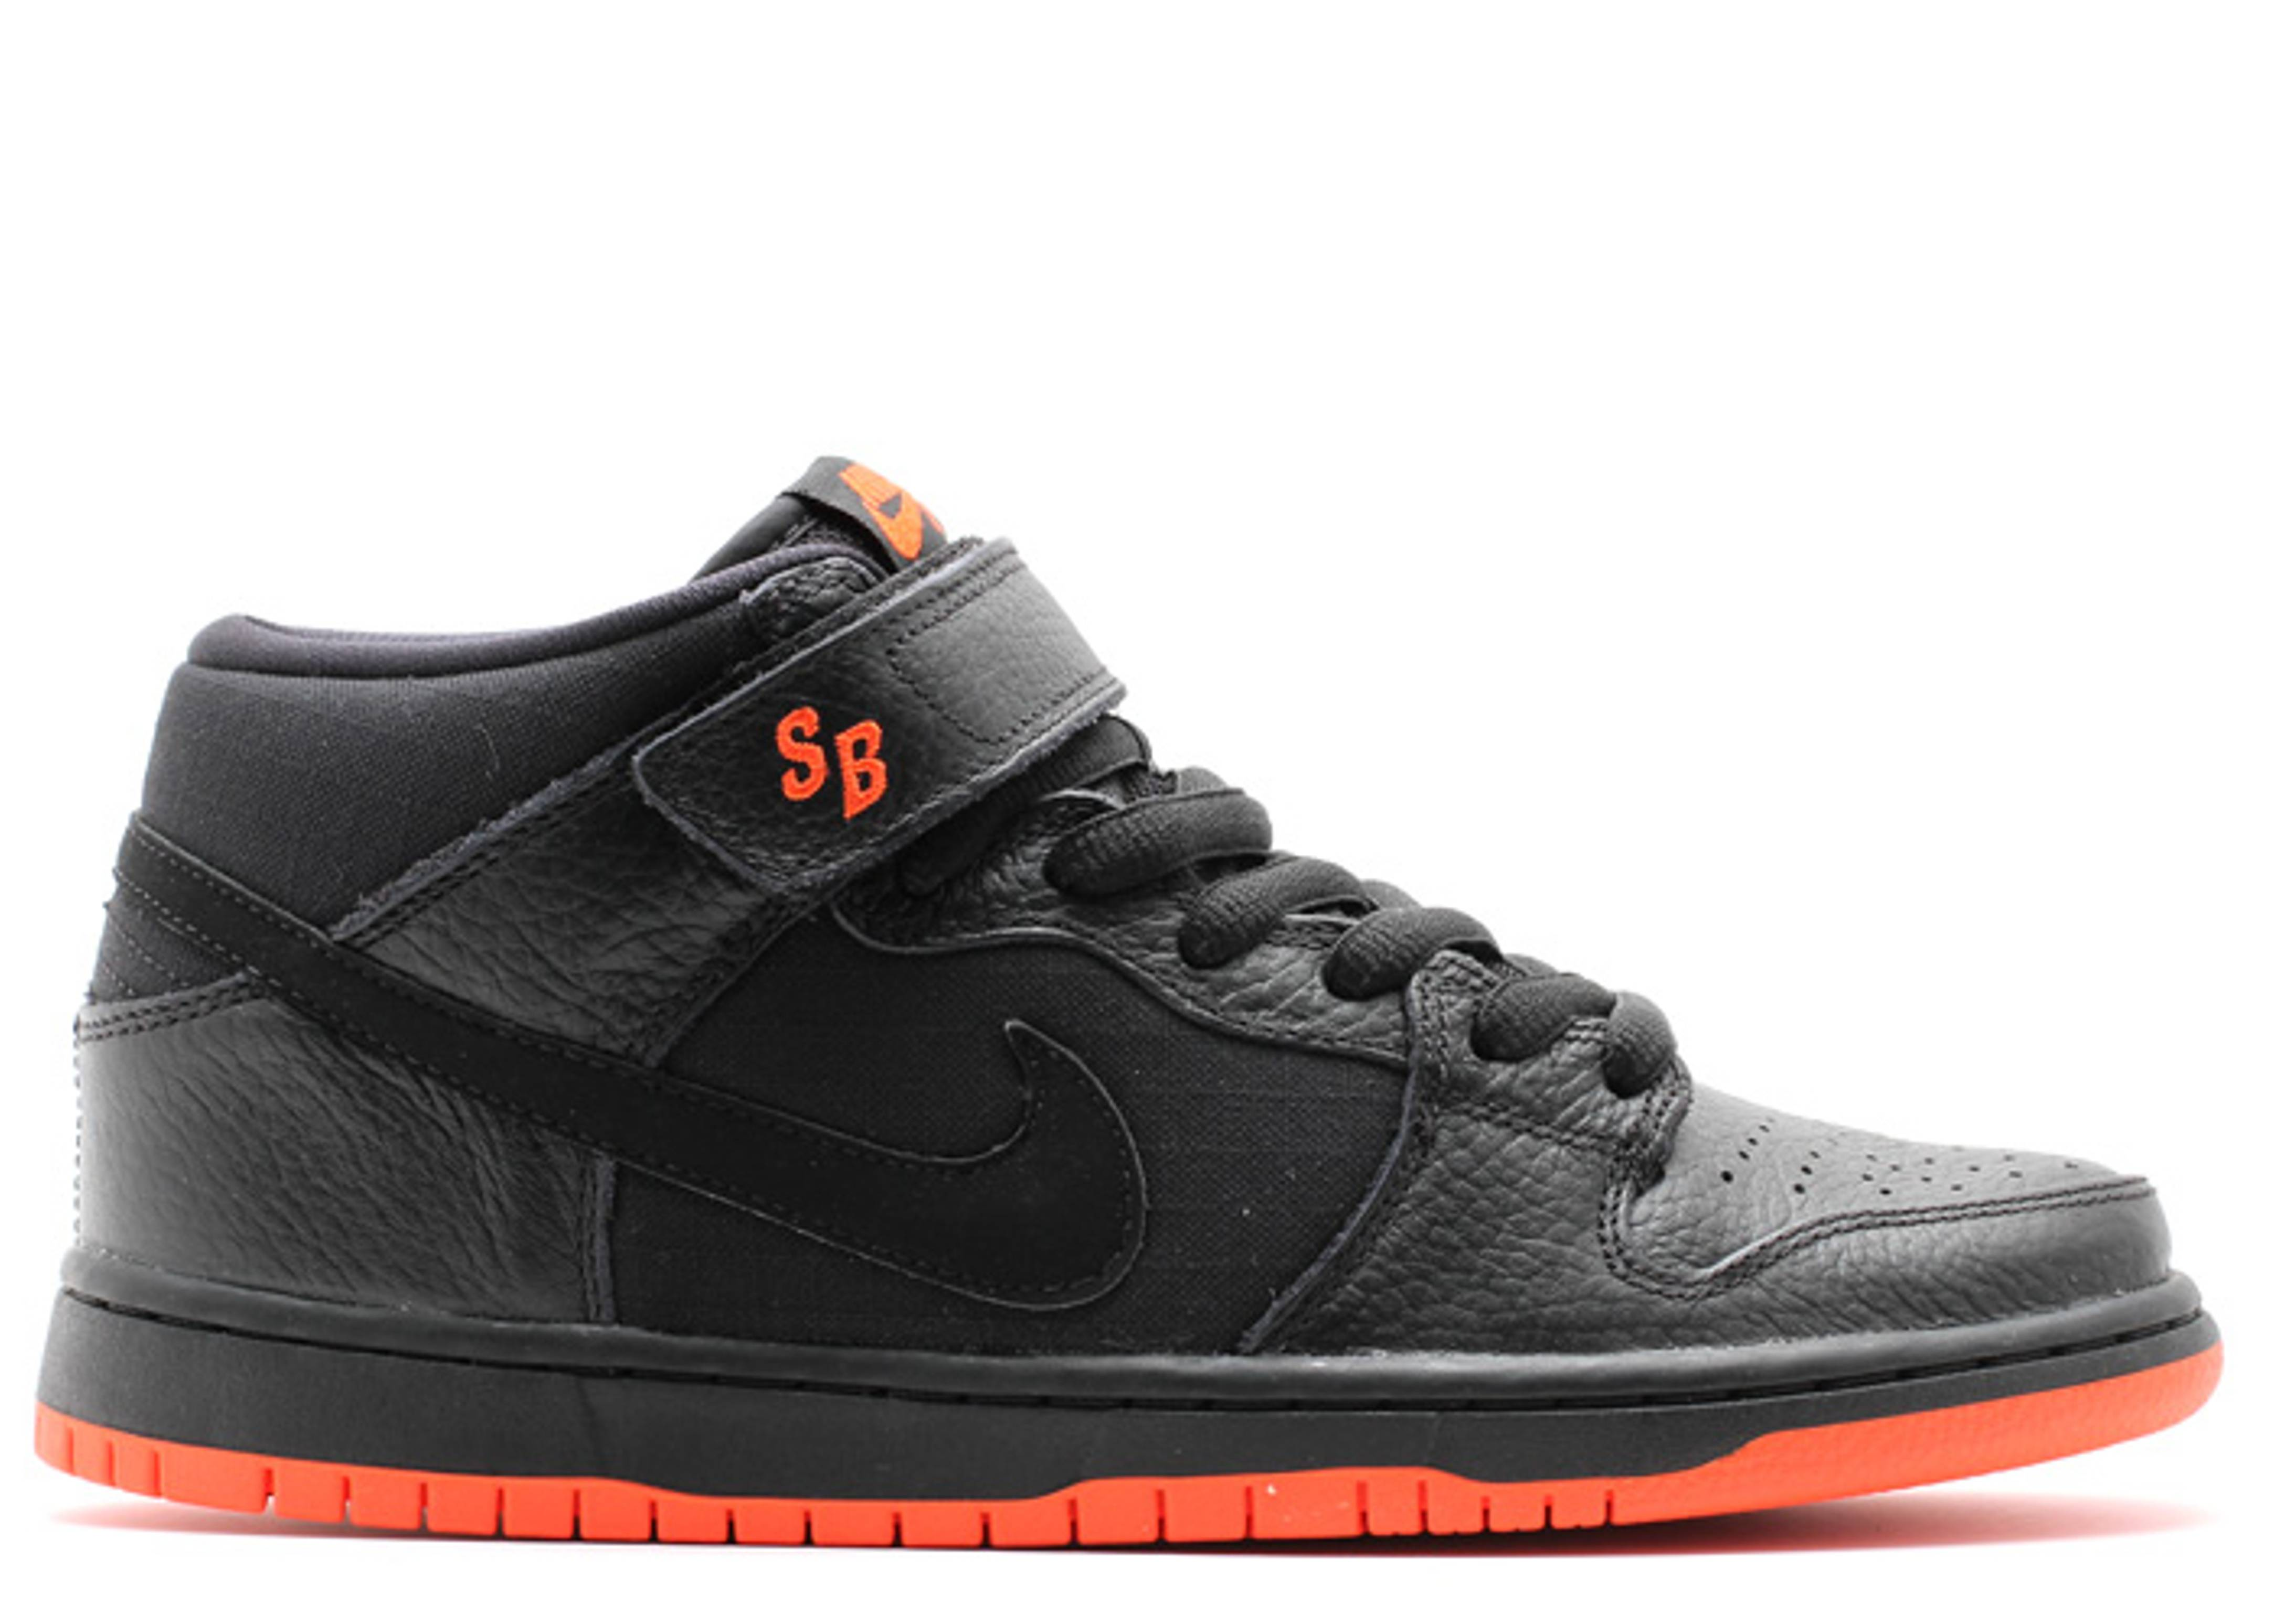 nike sb dunks mid for sale